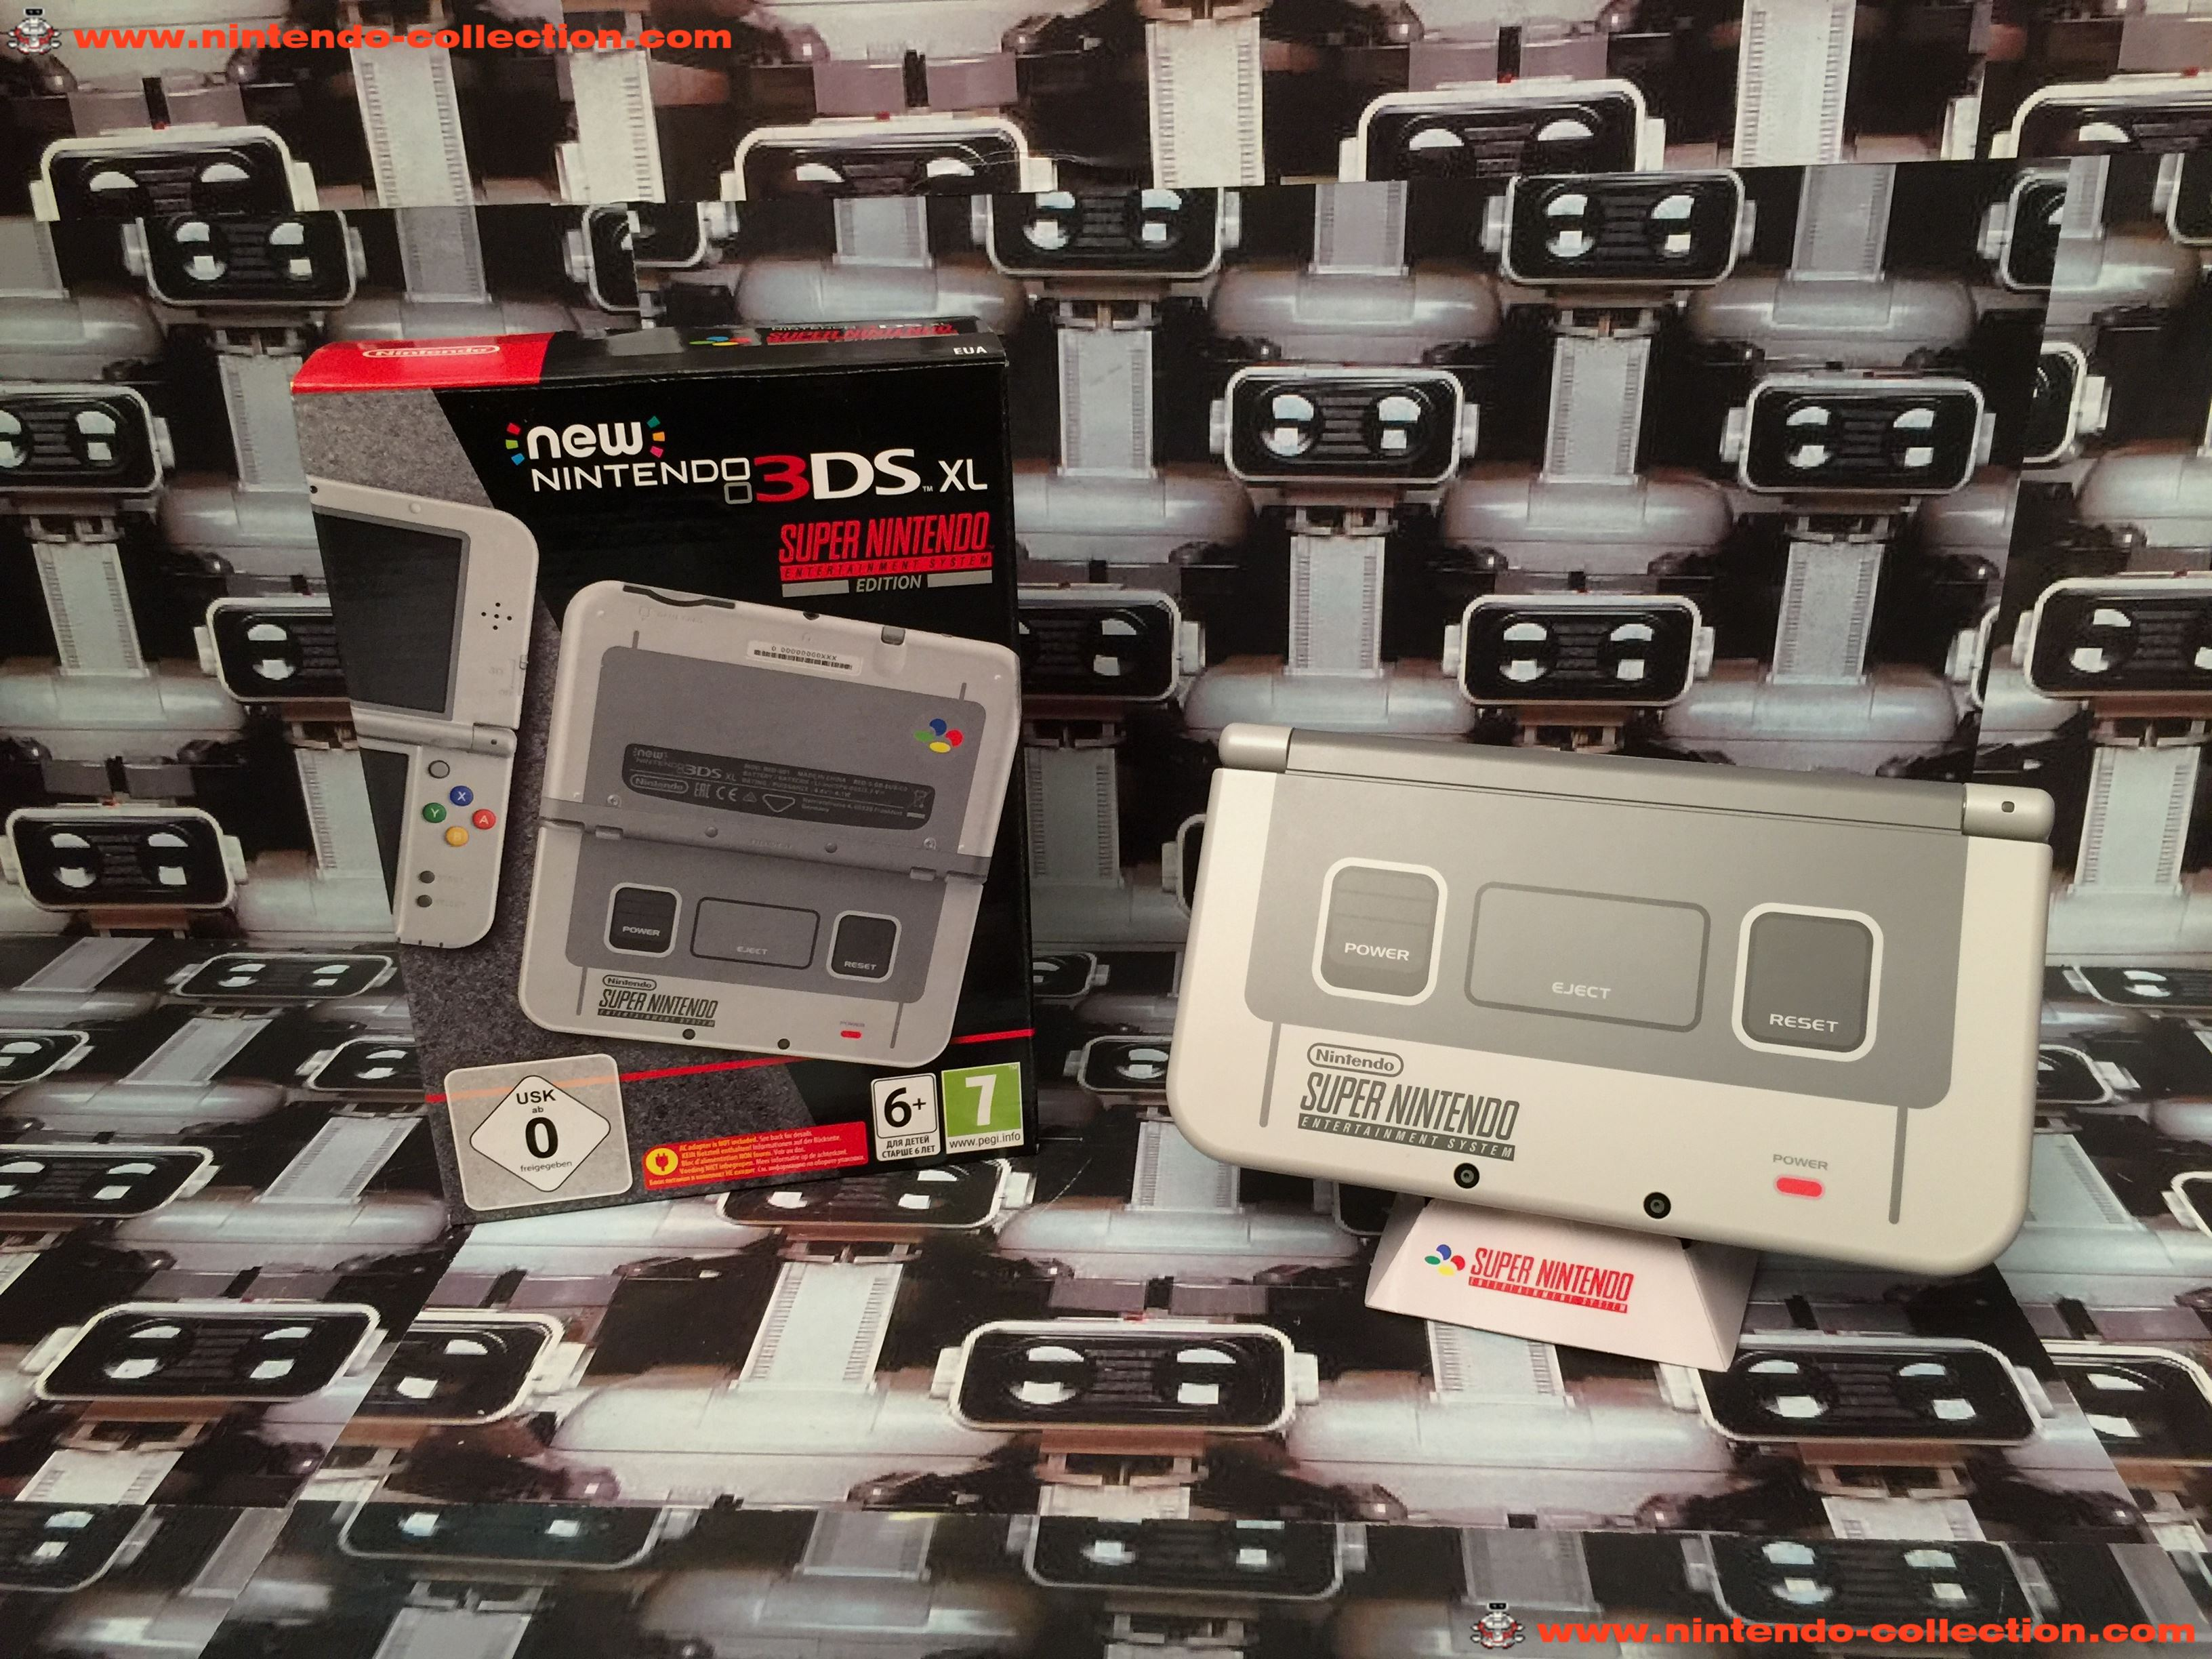 www.nintendo-collection.com - New Nintendo 3DS XL Super Nintendo Entertainment System Edition SNES S